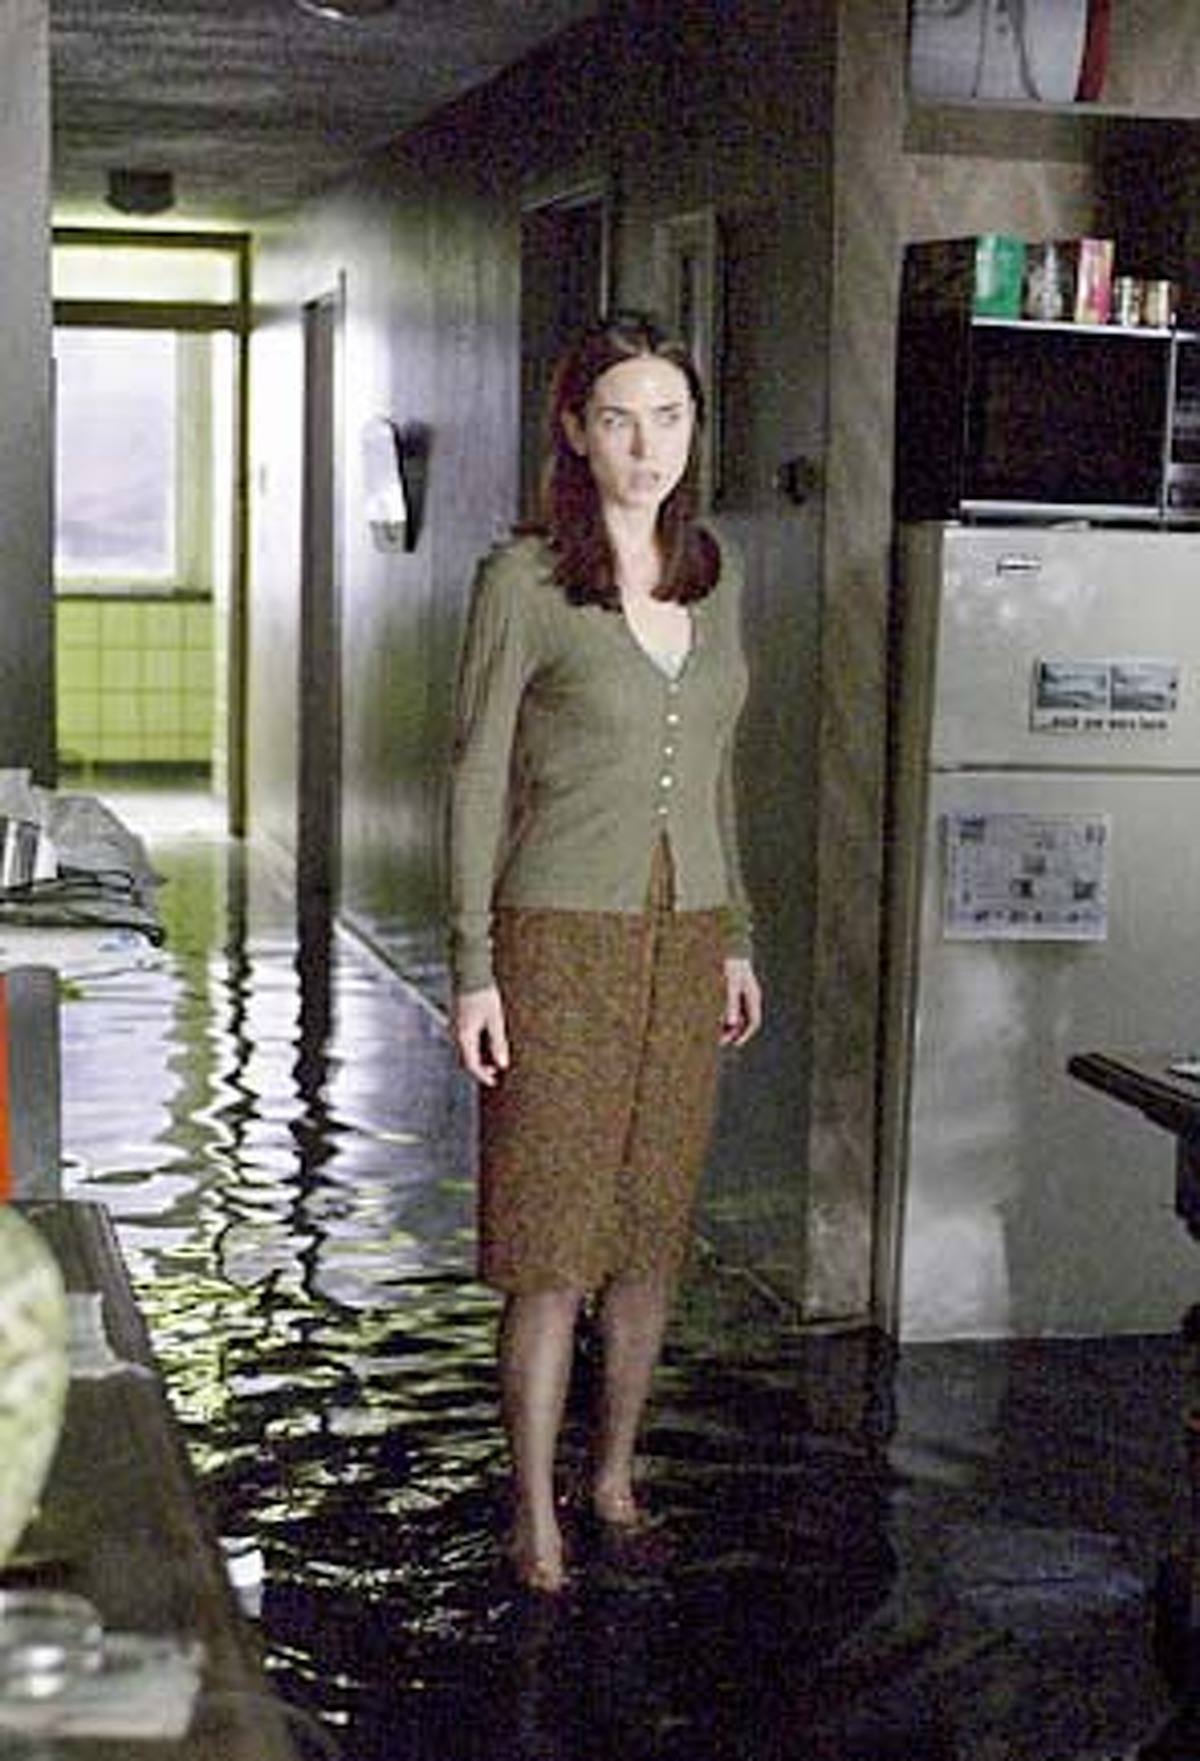 In this photo provided by Touchstone Pictures, Dahlia Williams (Jennifer Connelly) discovers her new apartment - dilapidated, cramped, and worn - seems to take on a life of its own in